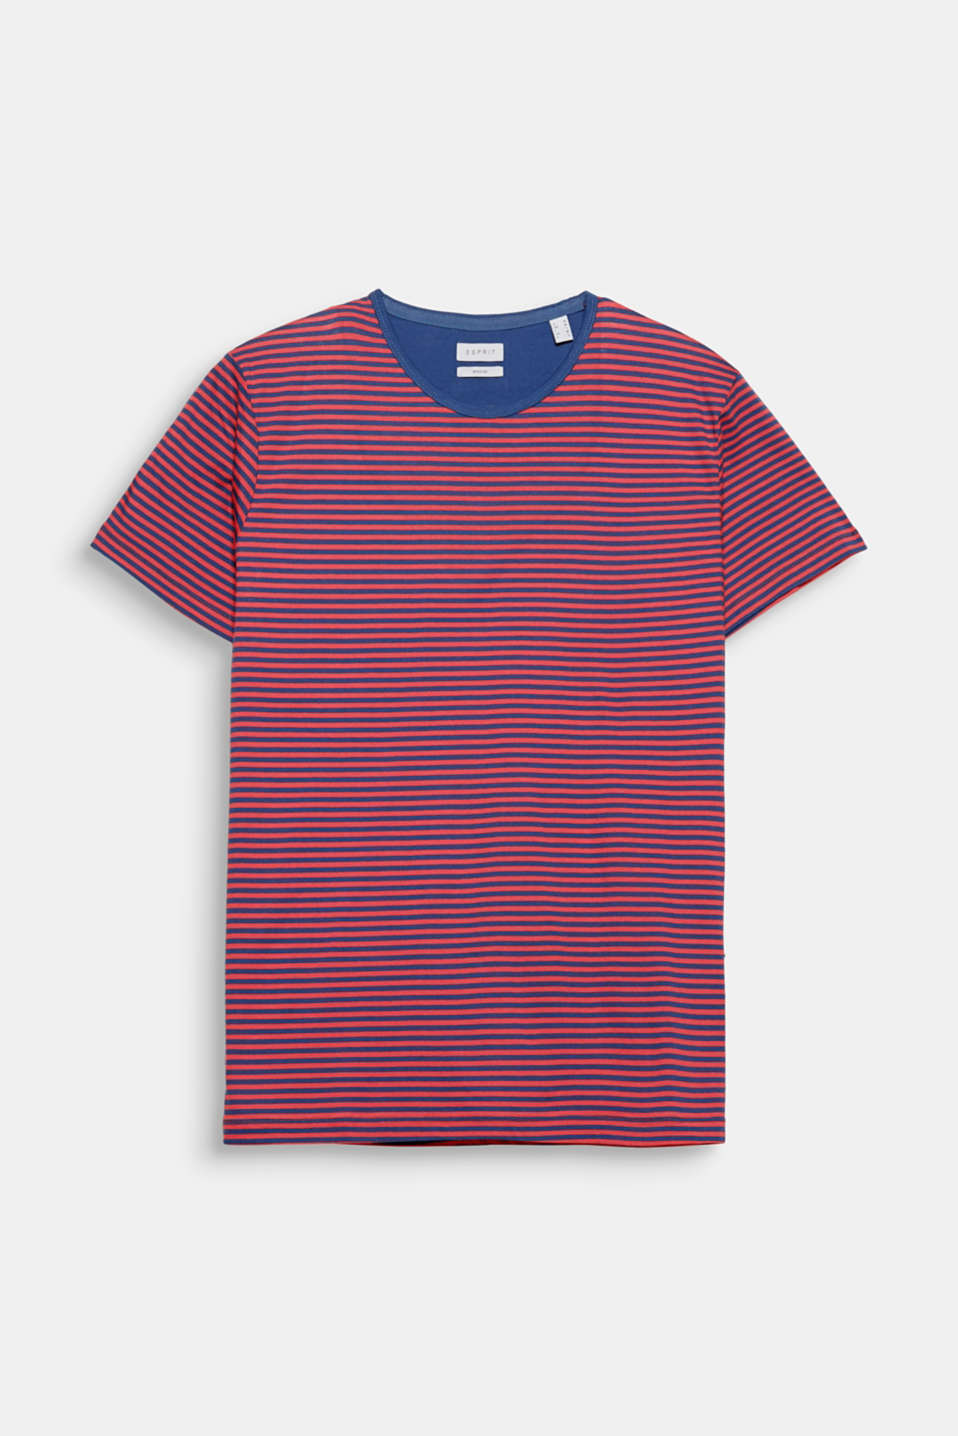 Fine stripes give this T-shirt a sporty nautical look.